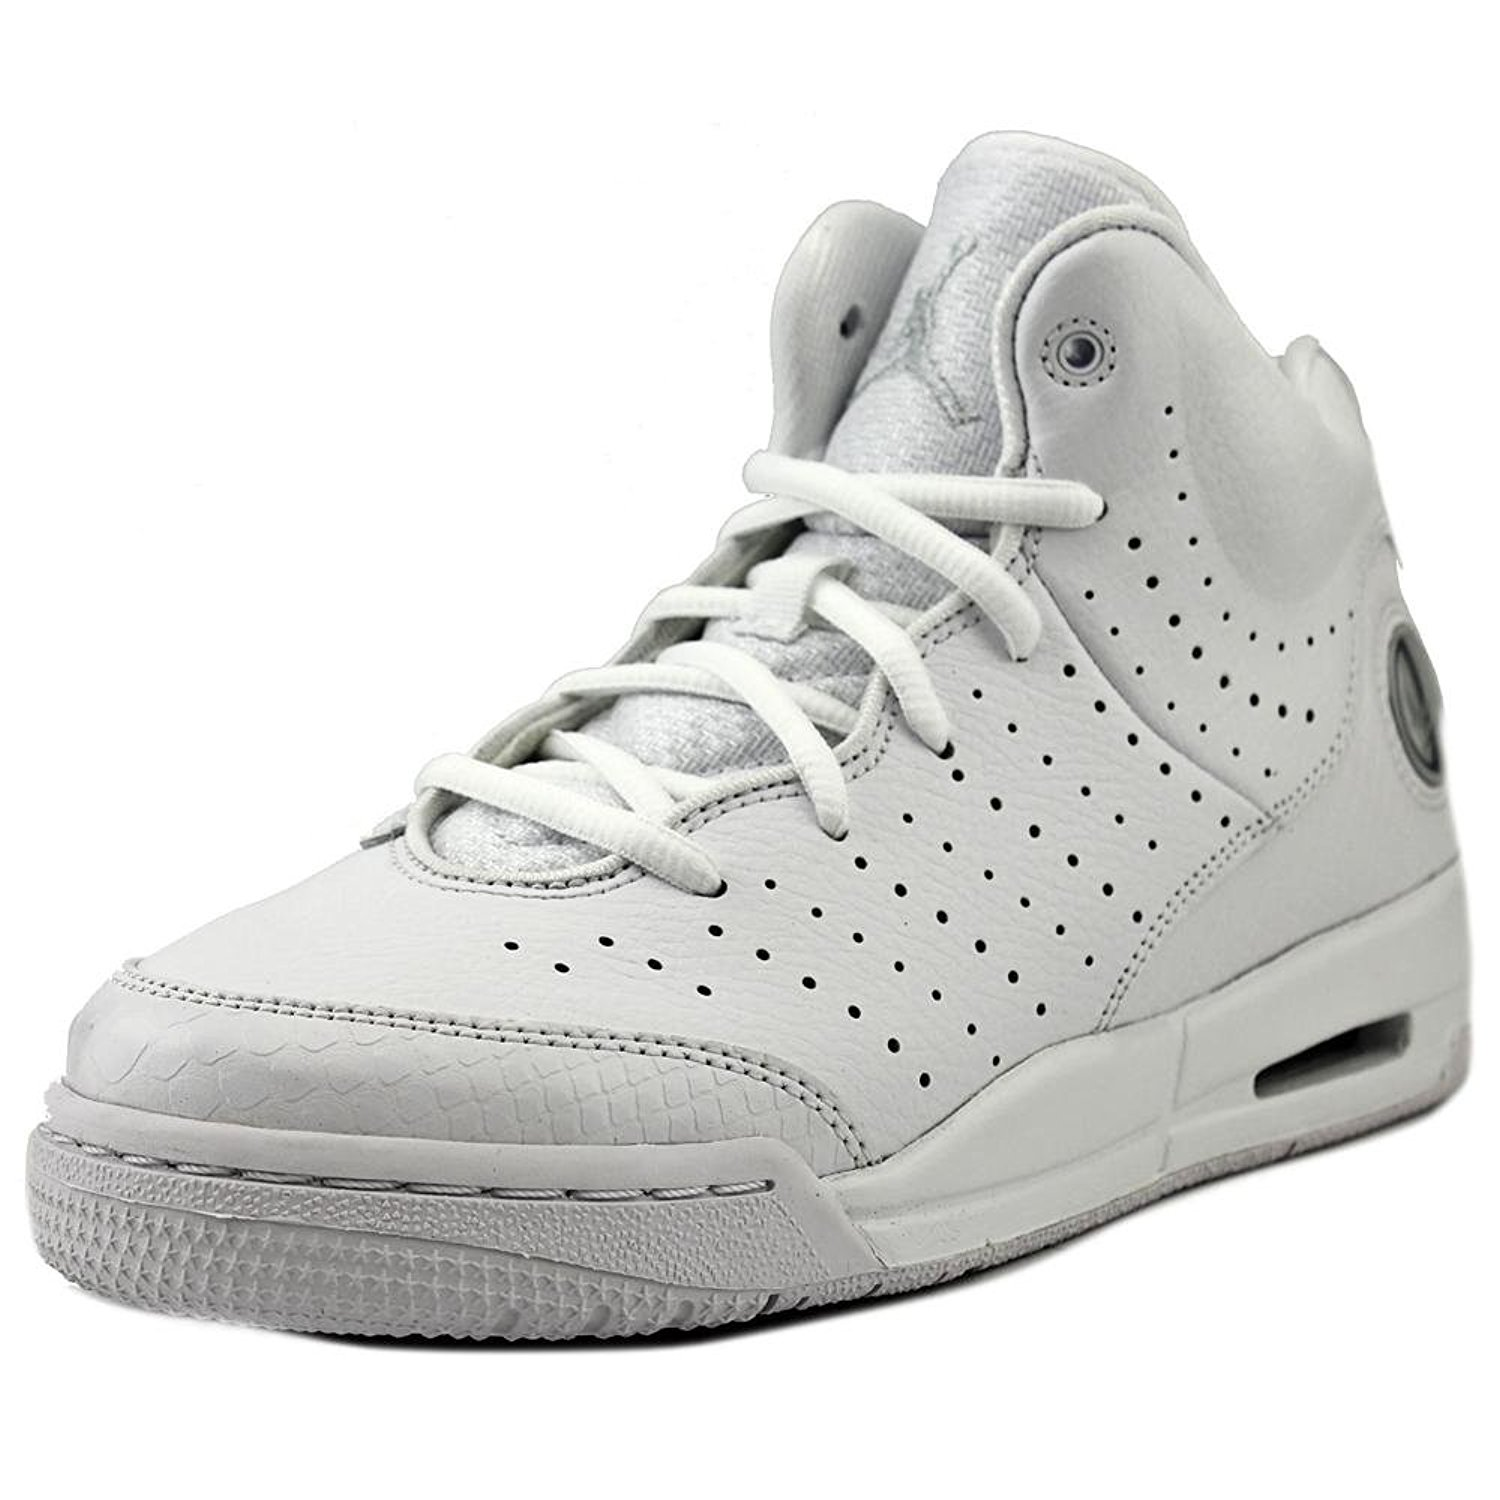 bbcafaeec4e5 Get Quotations · Nike Youths Jordan Flight Tradition Leather Trainers